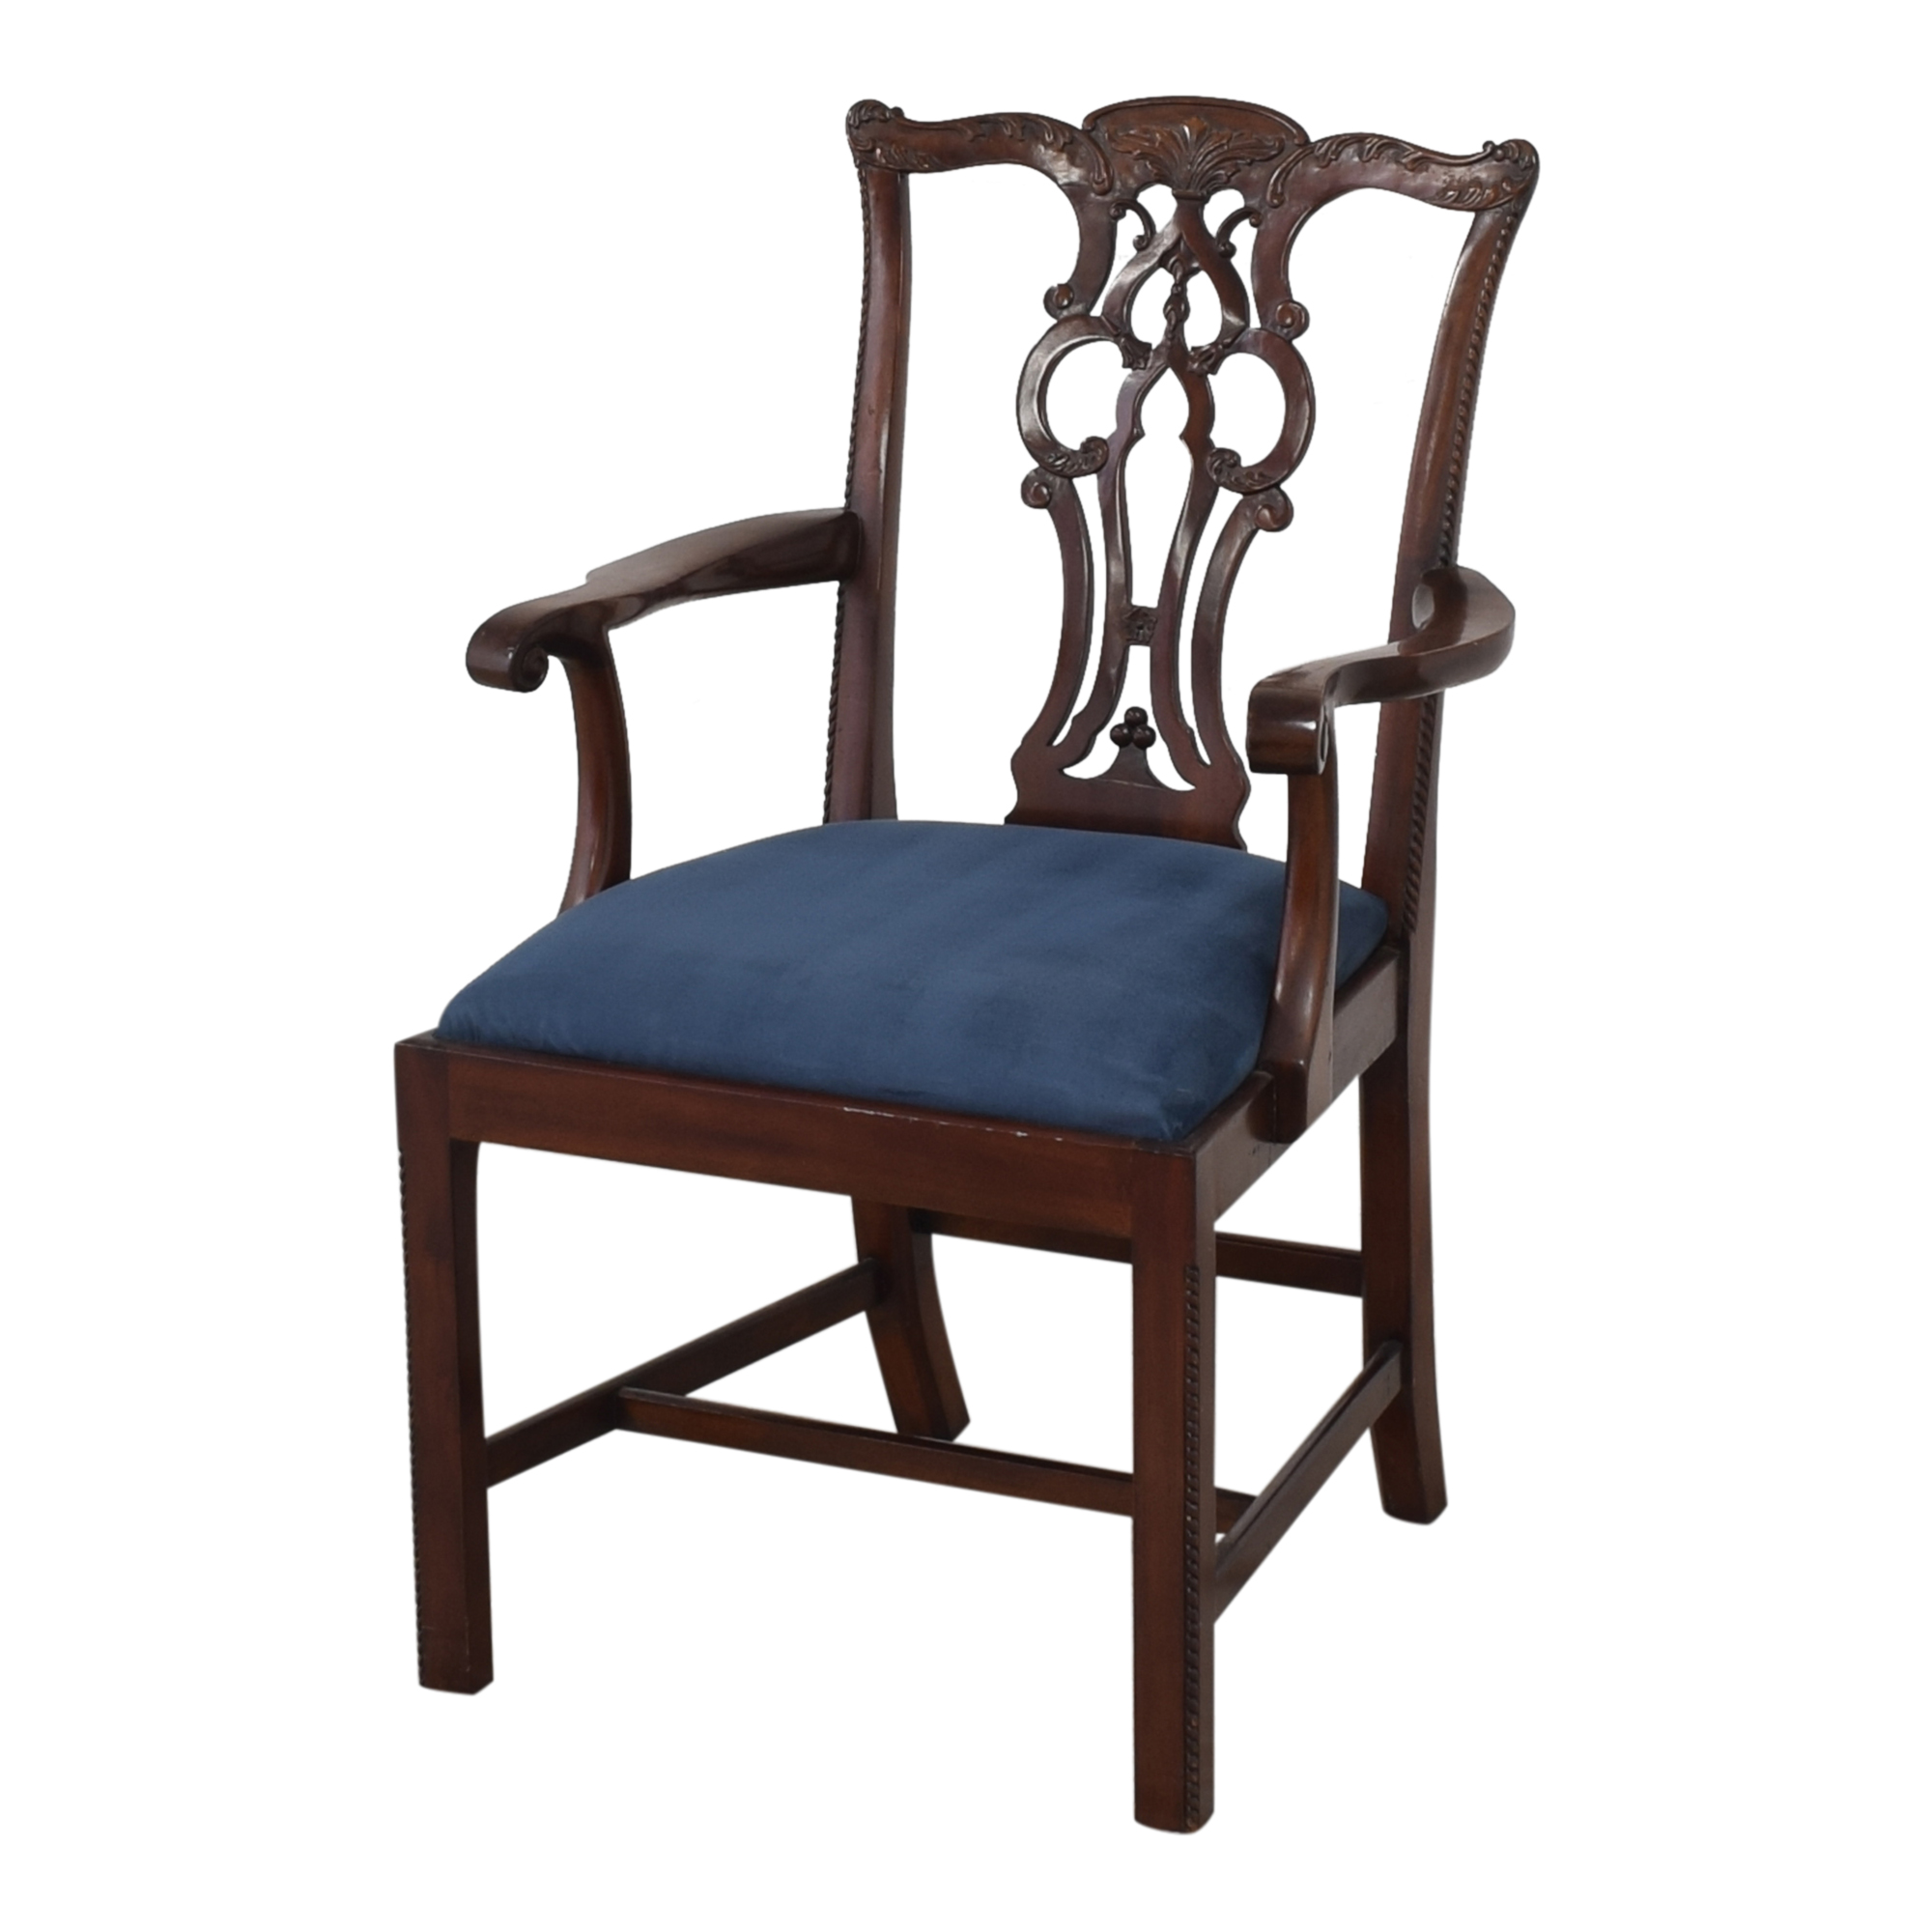 buy Maitland-Smith Chippendale Dining Arm Chair Maitland-Smith Dining Chairs